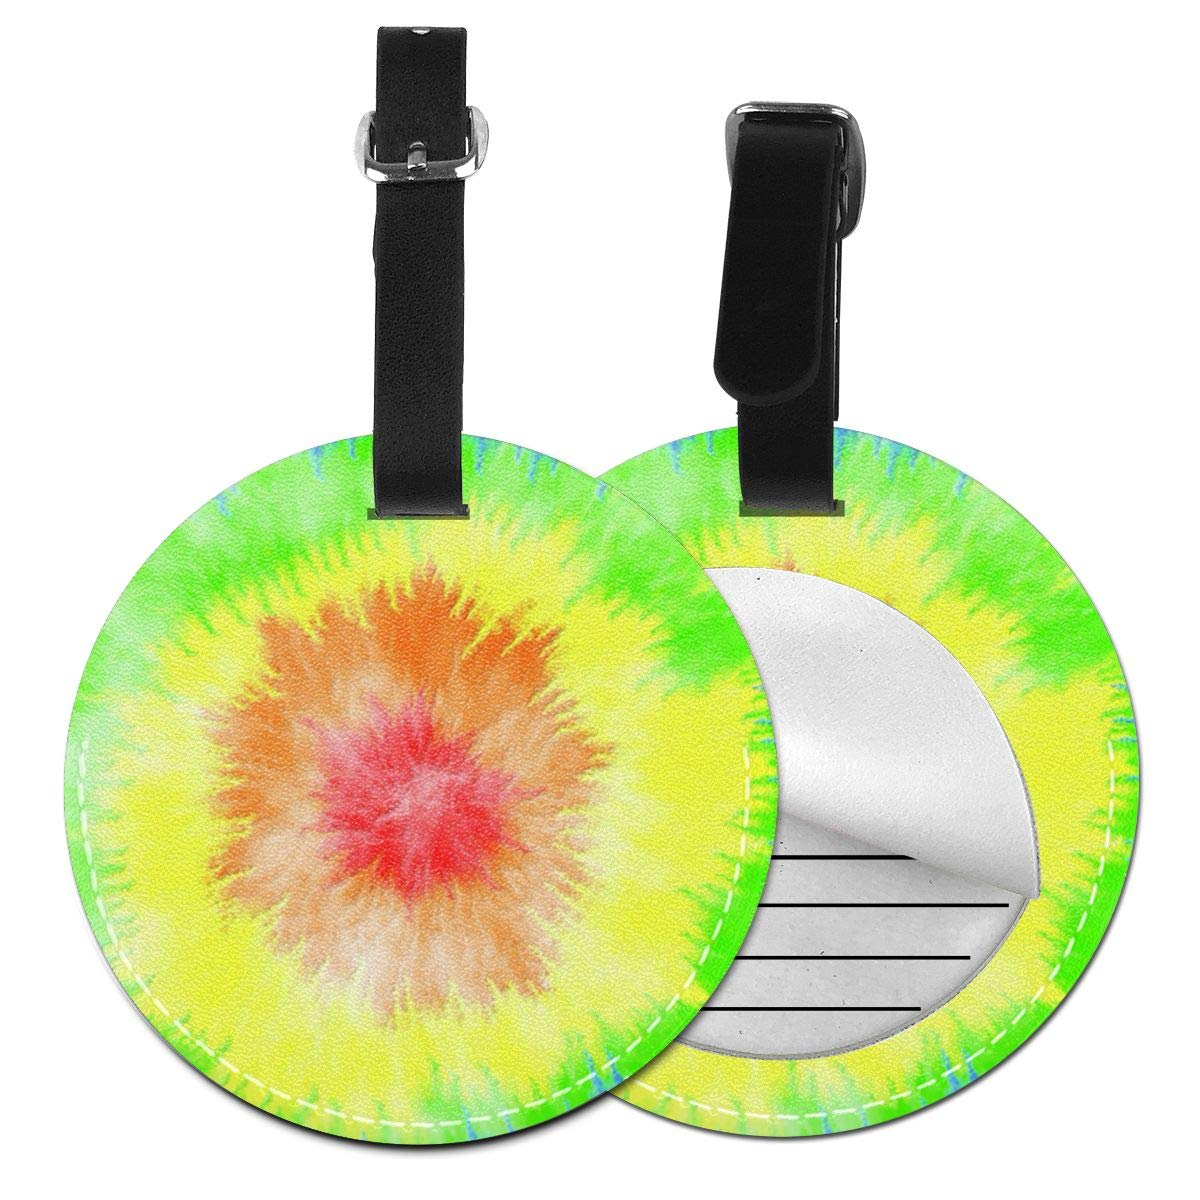 Free-2 Tie Dye Psychedelic Spiral 60s 70s Style Luggage Tag 3D Print Leather Travel Bag ID Card